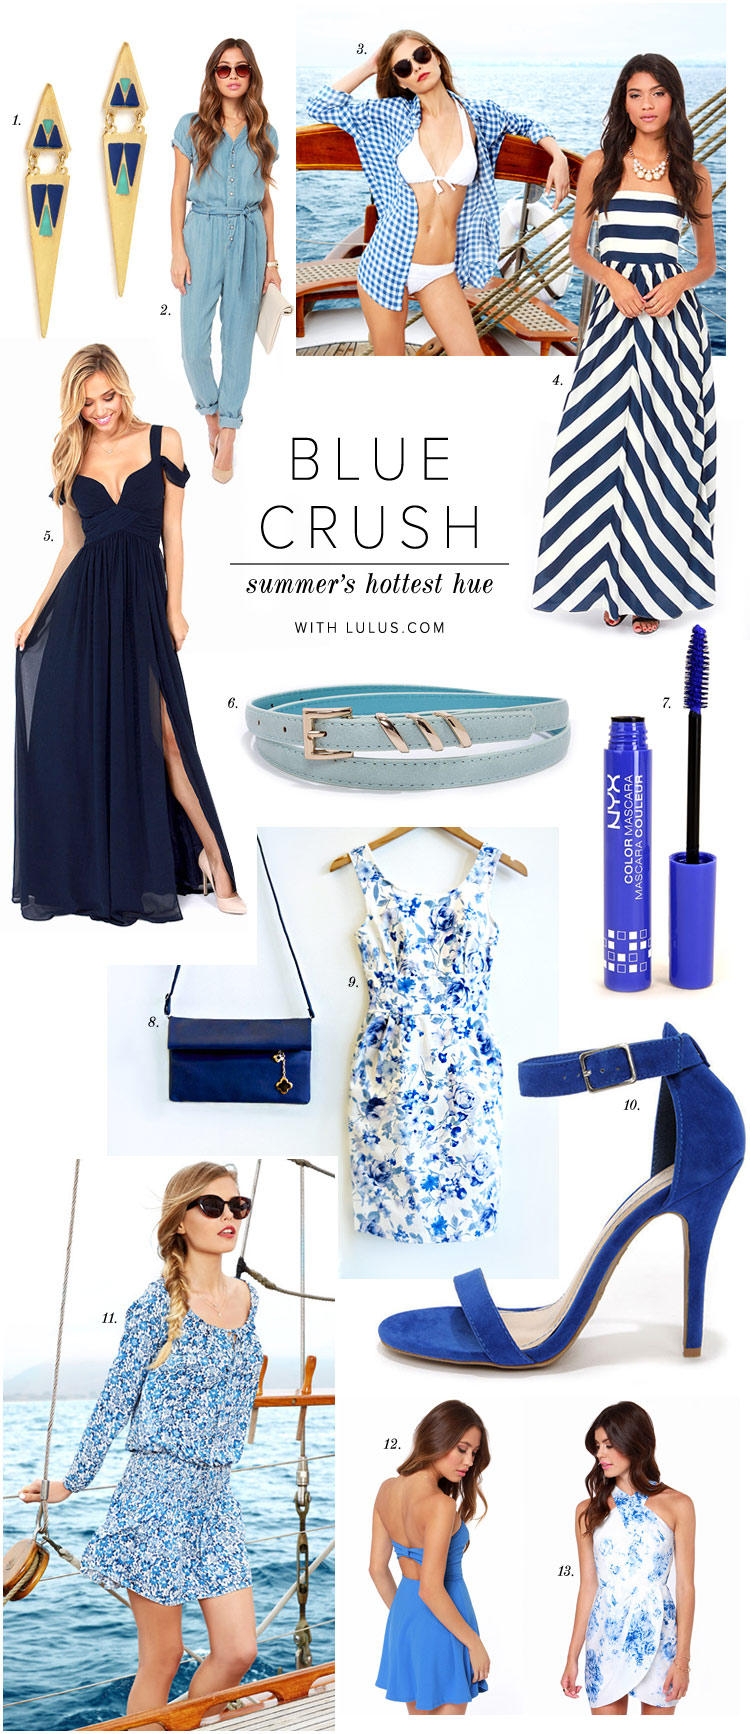 Trend Alert: Blue Crush